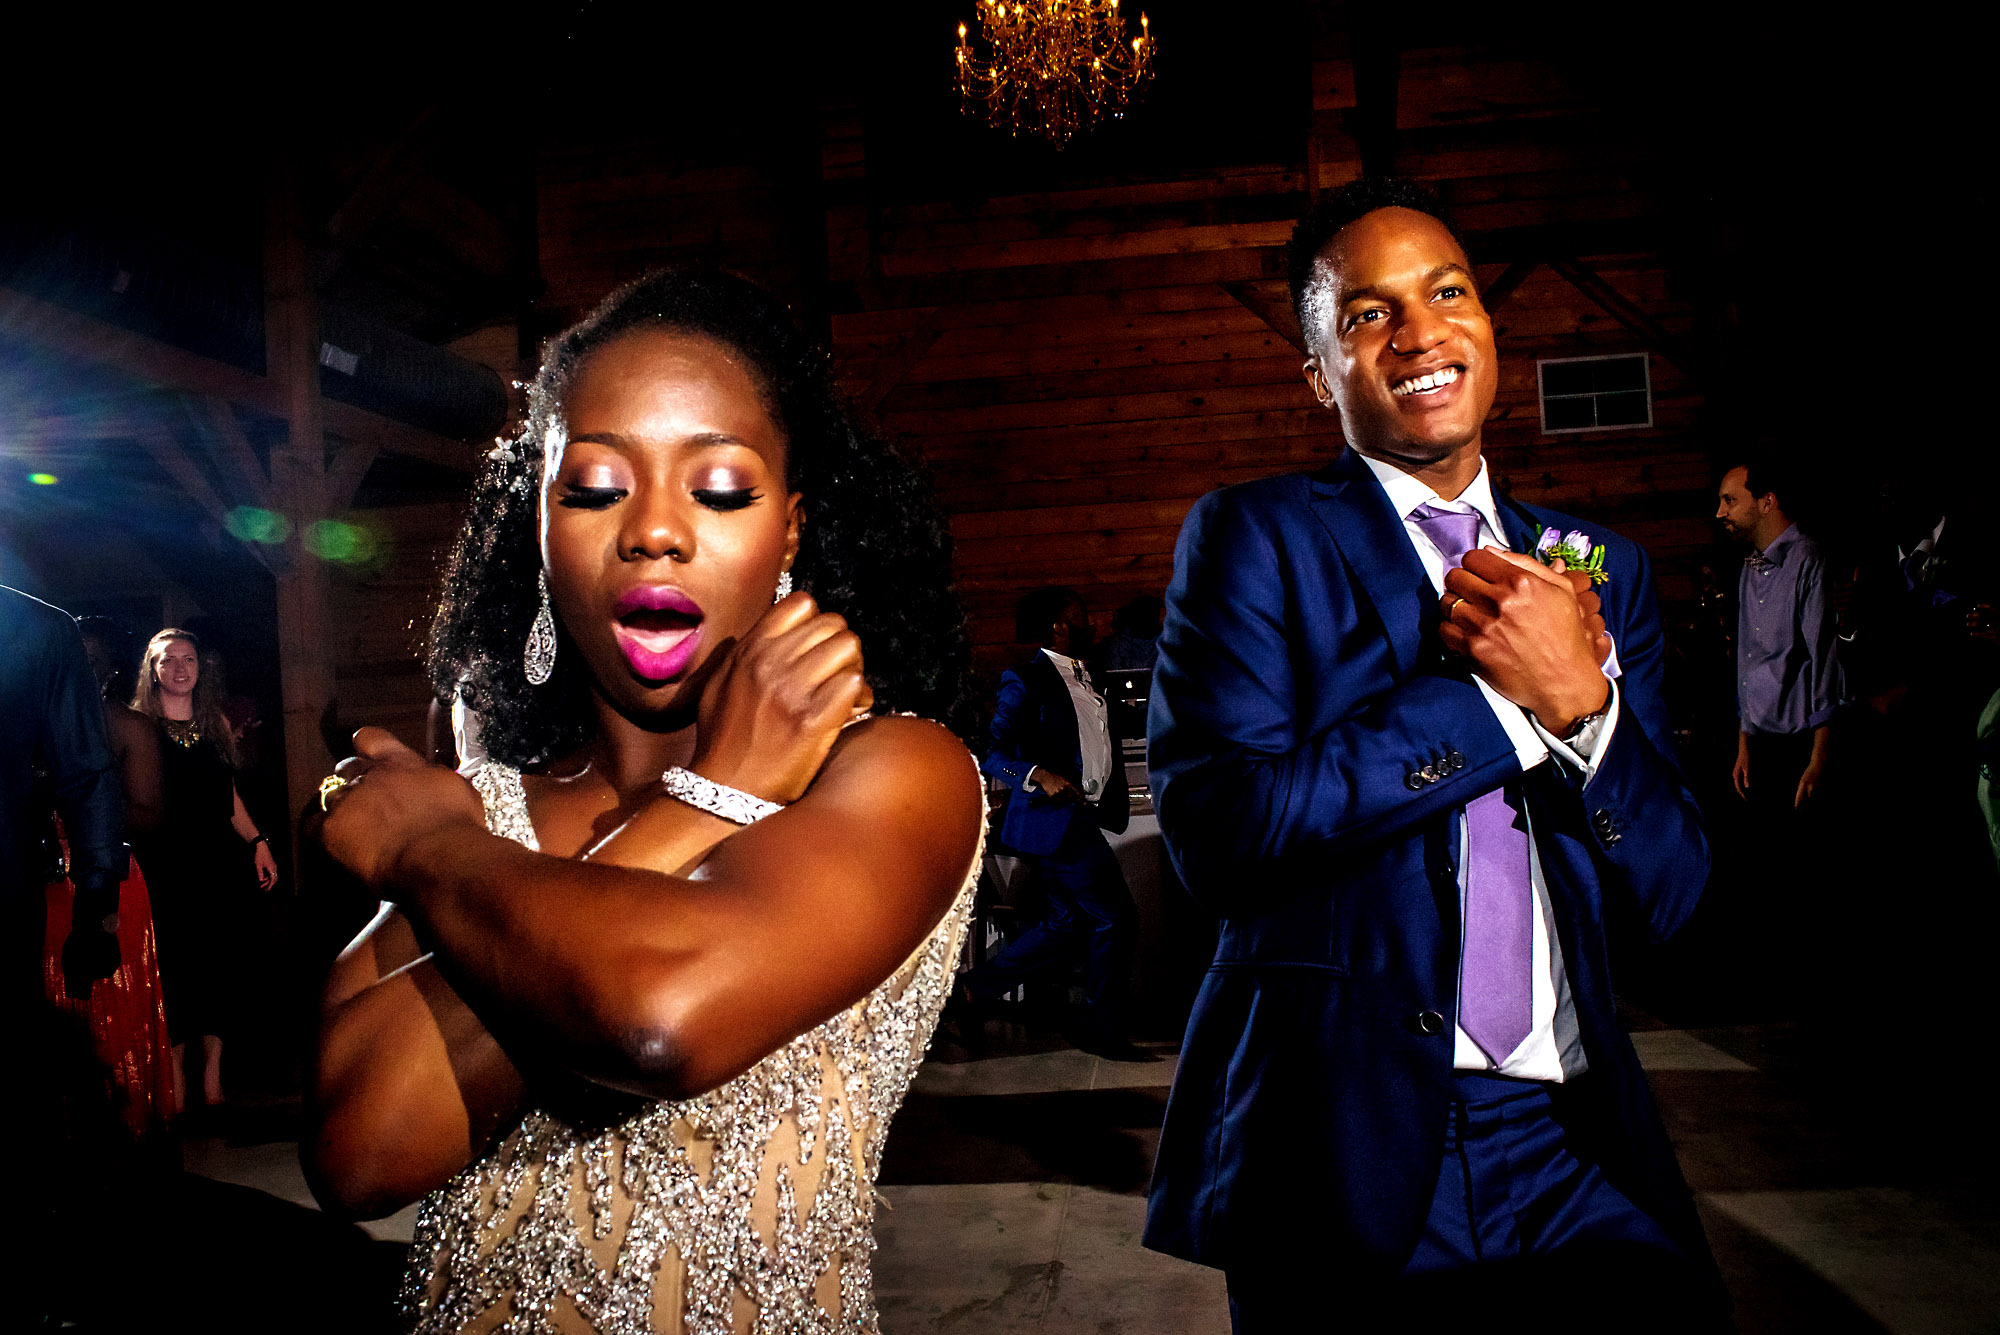 bride and groom doing the wakanda sign on the dance floor.jpg